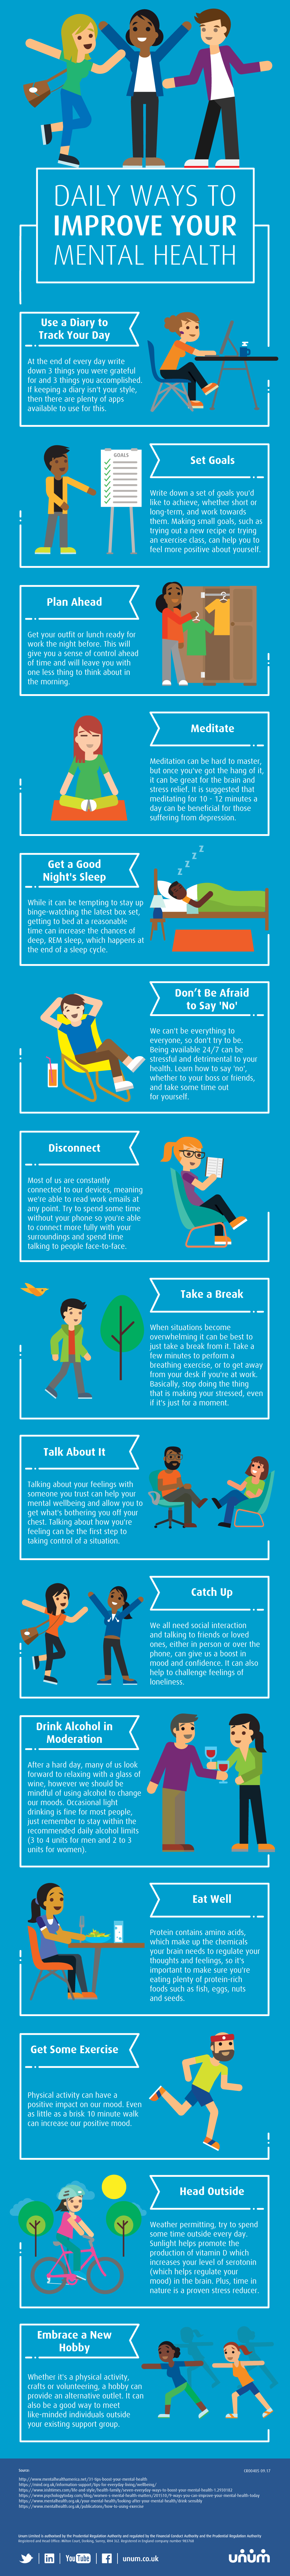 Daily ways to improve your mental health